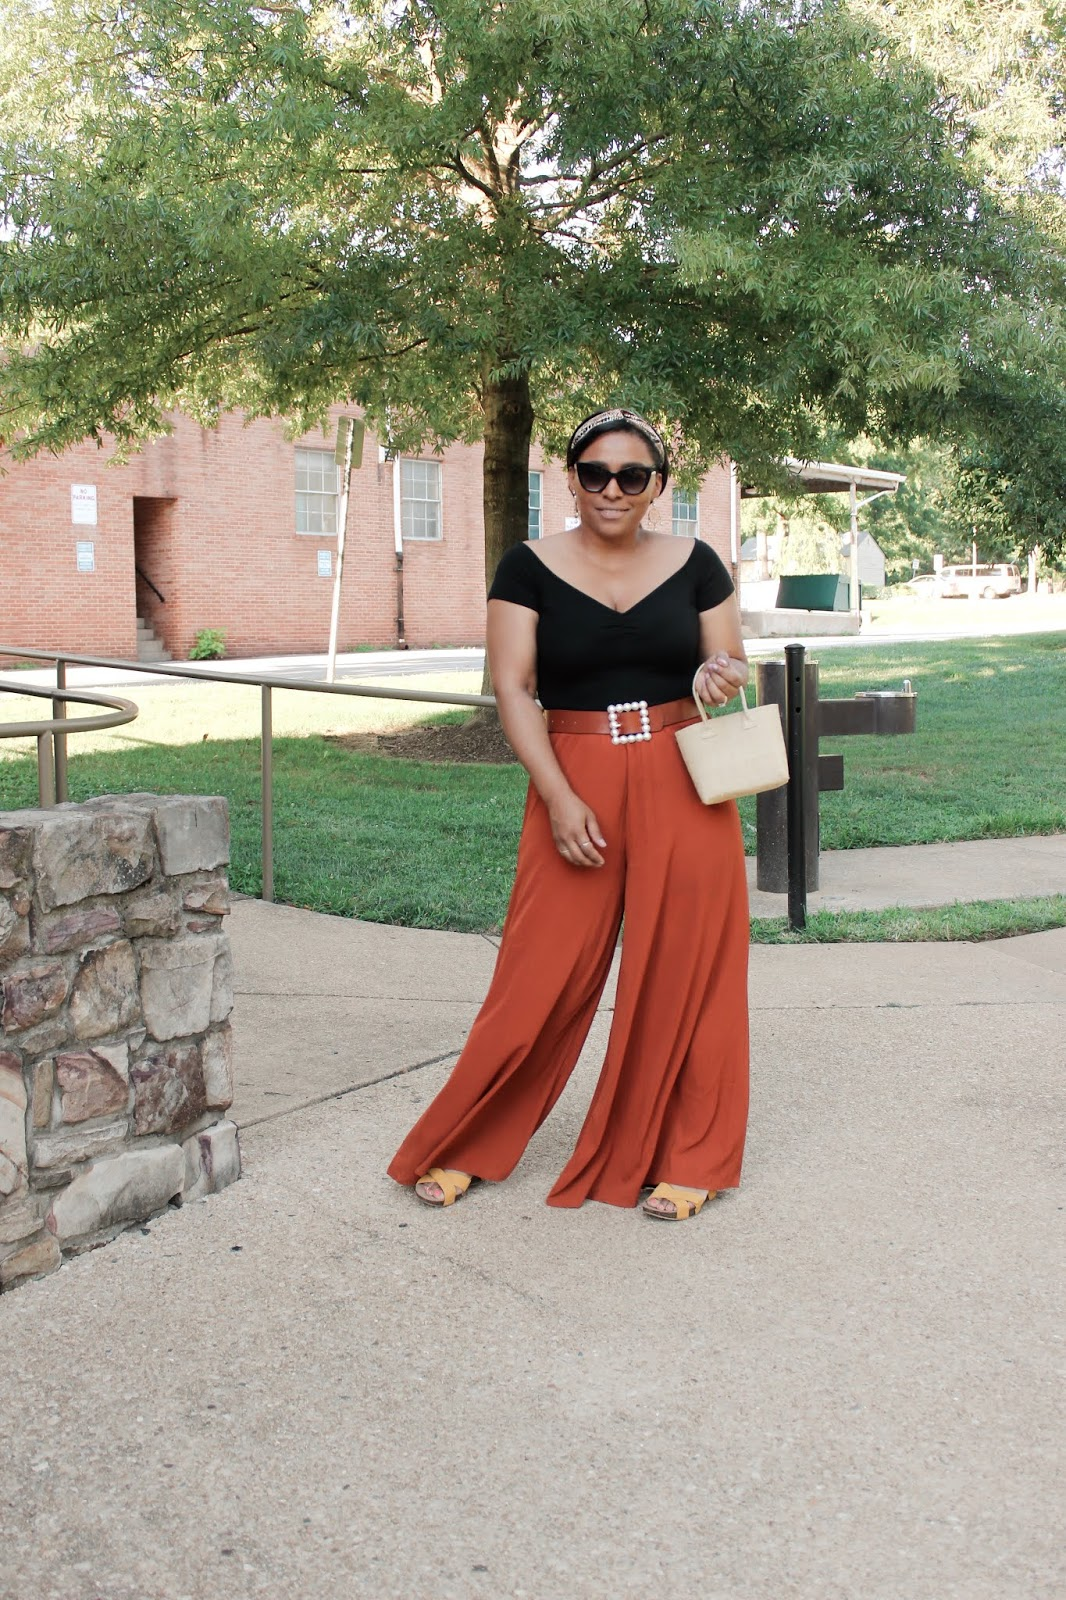 shein, shein clothes, shein haul, pleated pants, summer outfit ideas, wide leg pants